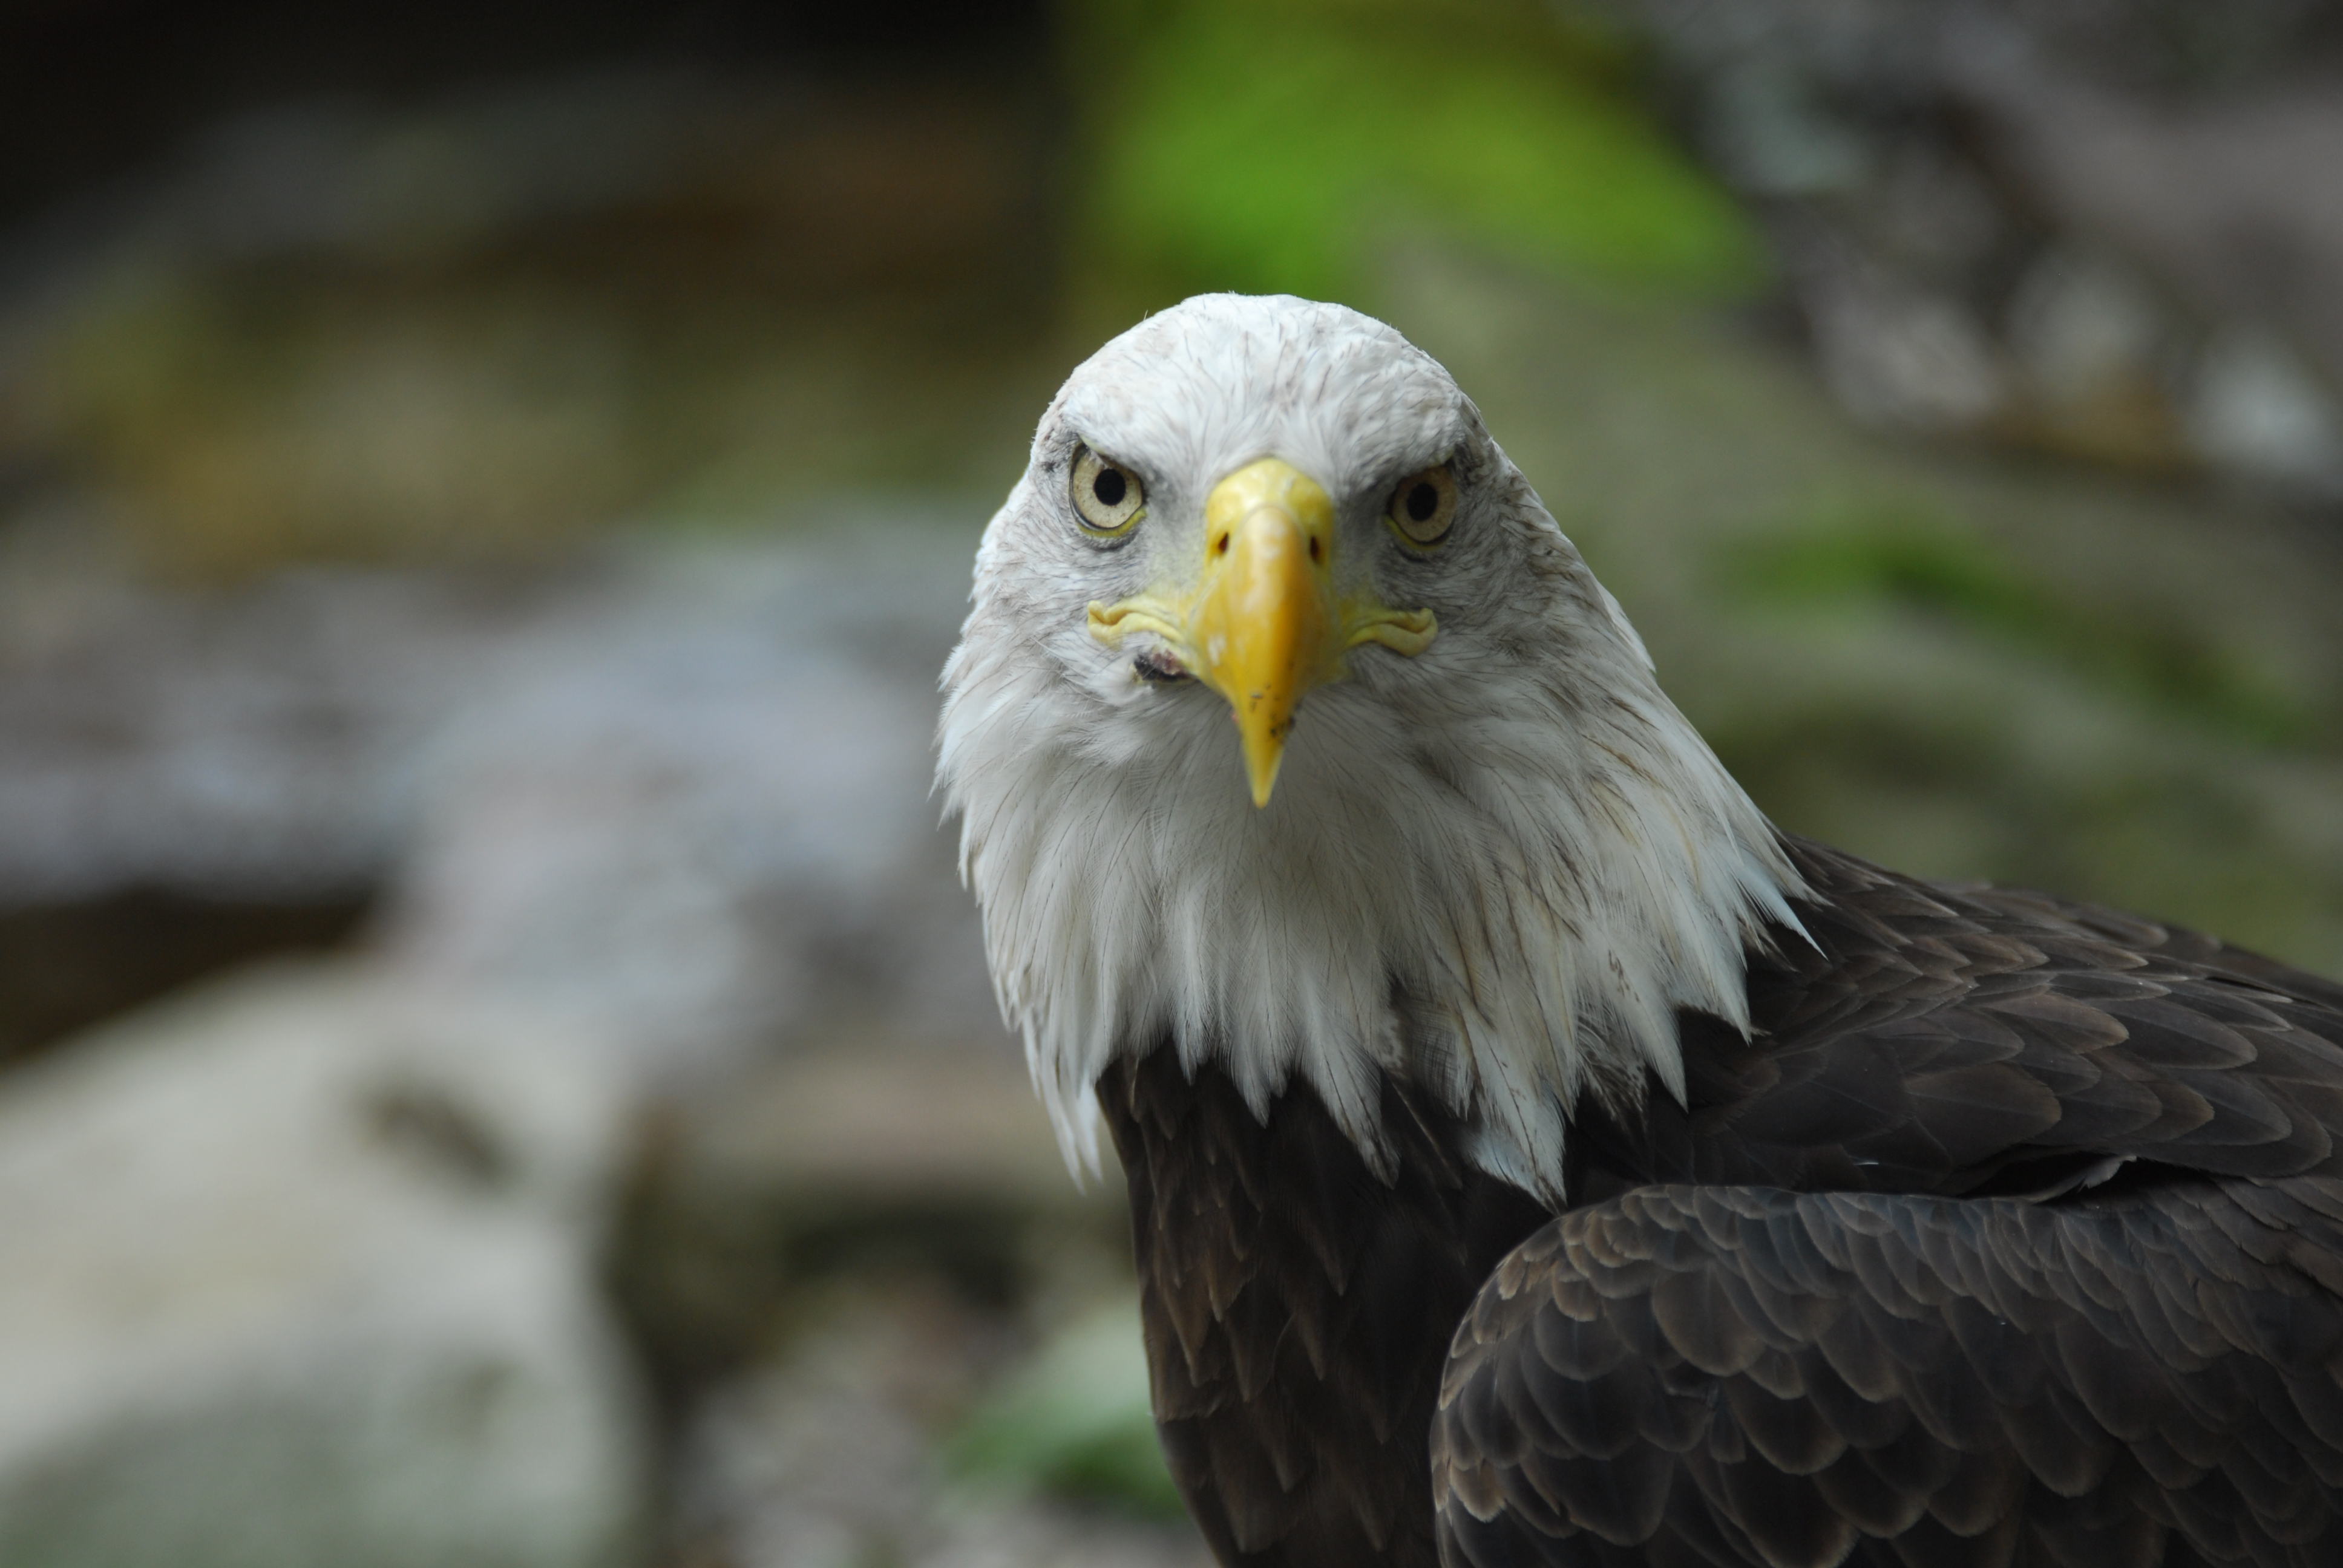 83347 download wallpaper Animals, Bald Eagle, White-Headed Eagle, Eagle, Bird, Predator, Beak, Feather screensavers and pictures for free